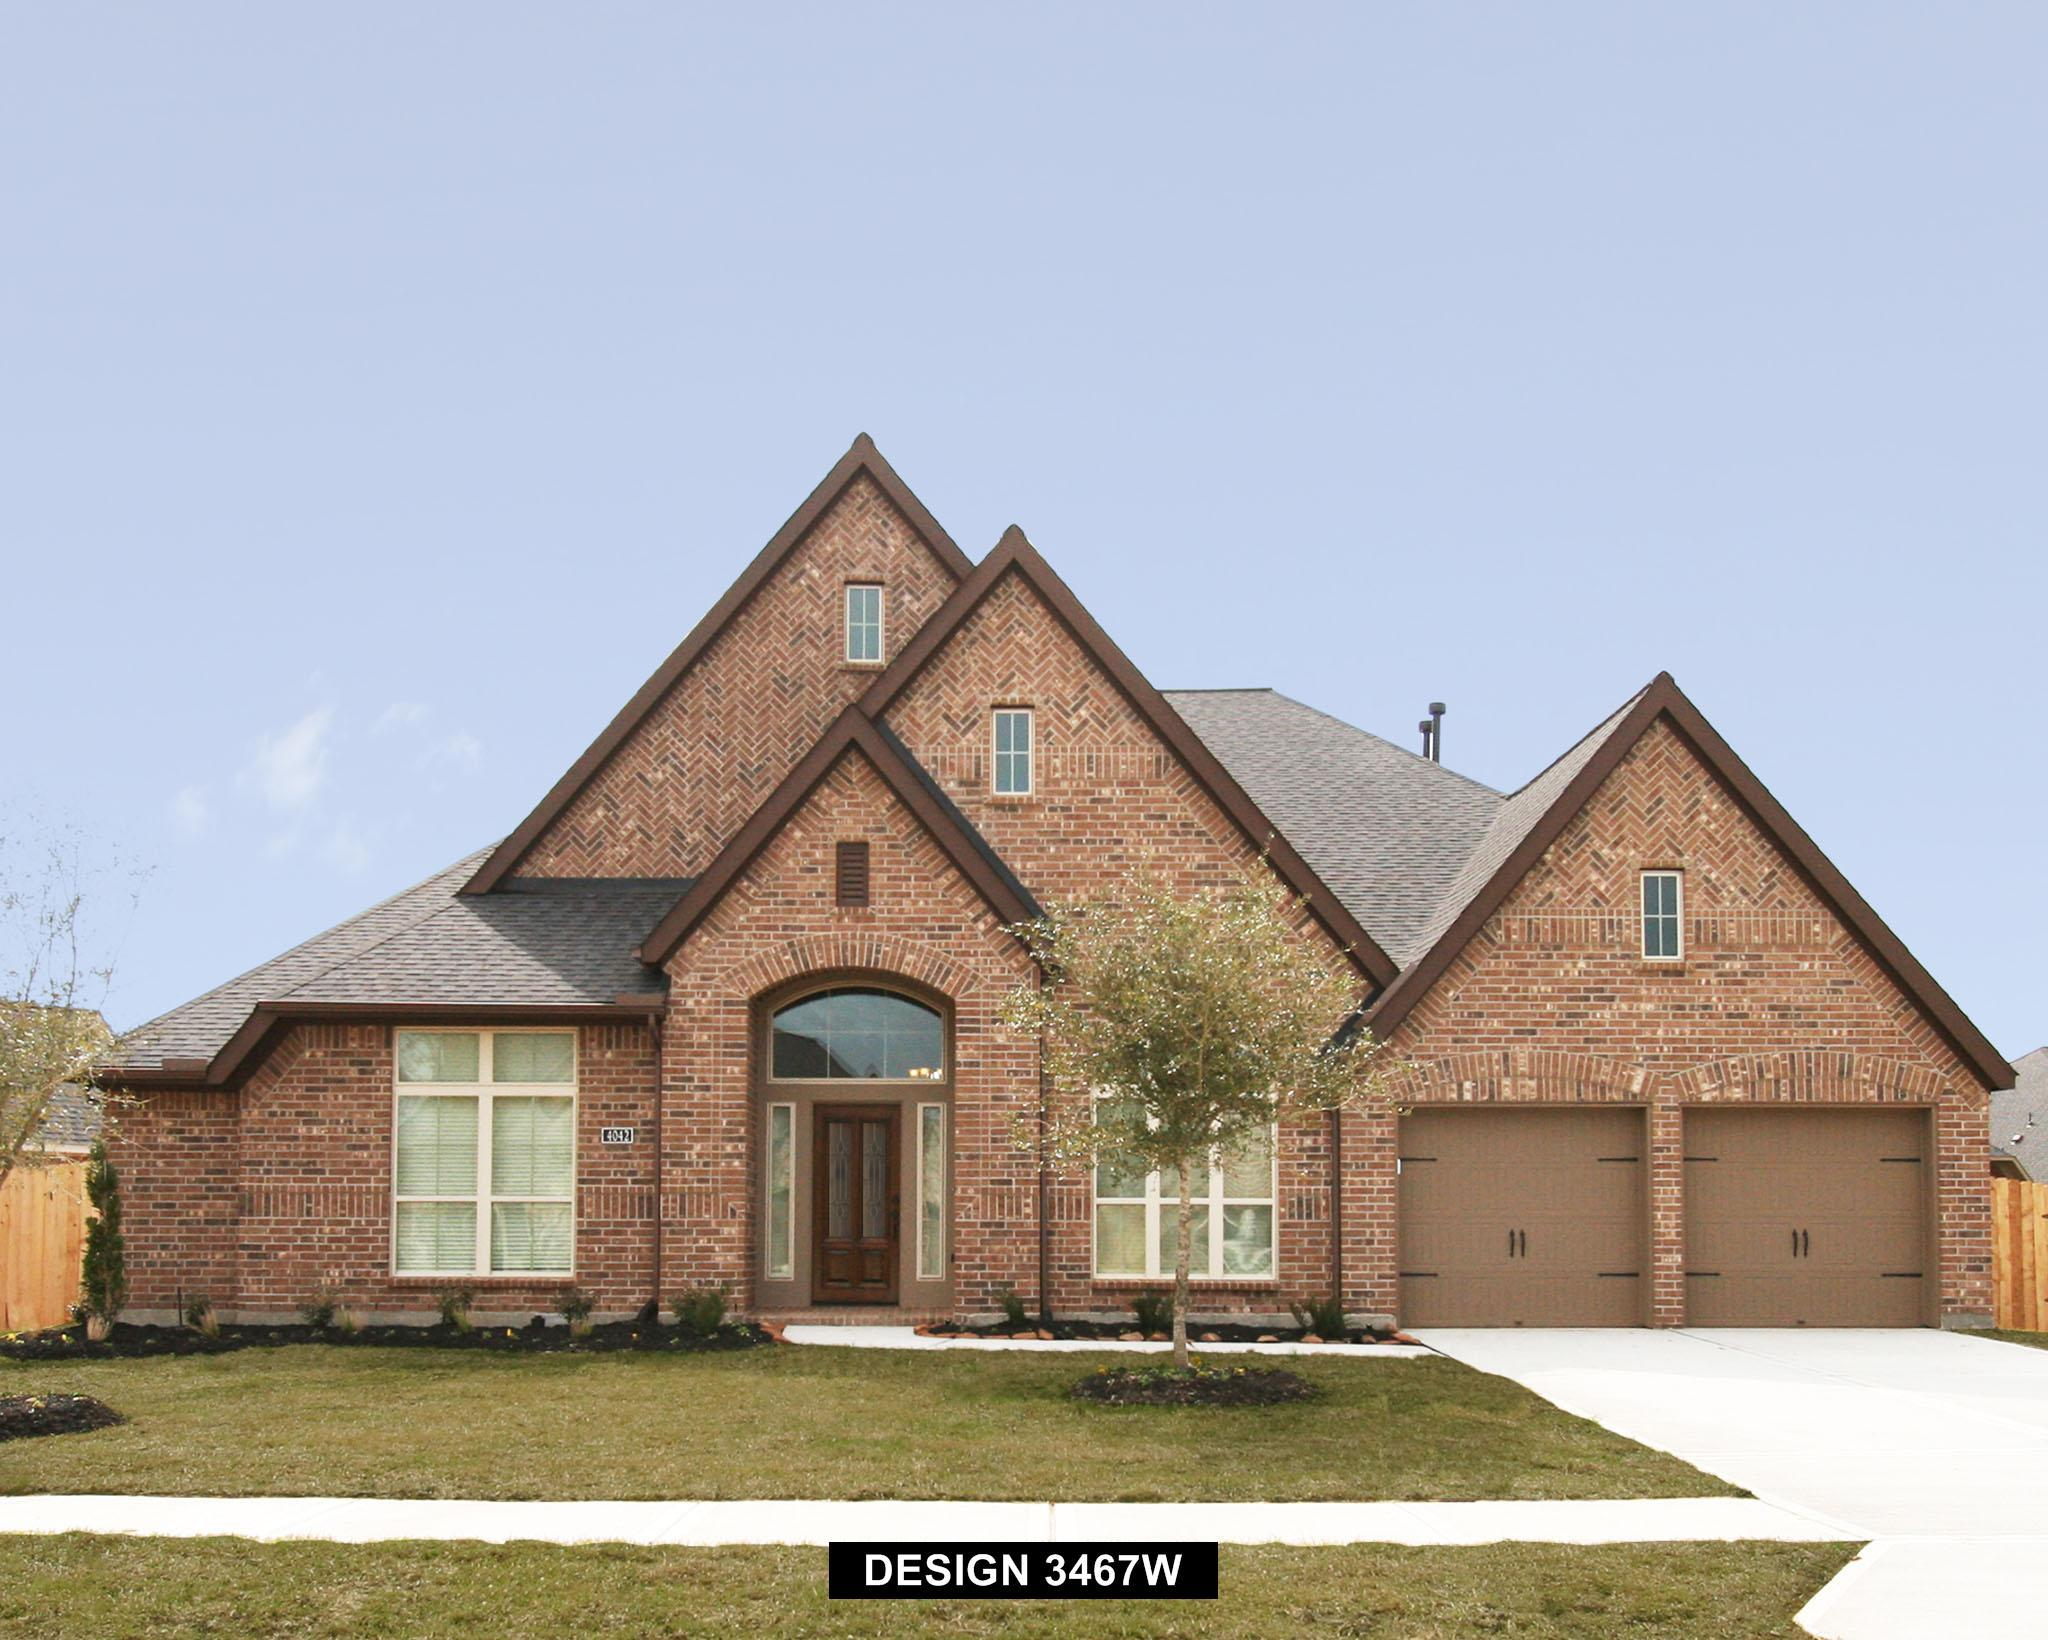 3467W - Shadow Creek Ranch - Azalea Creek 70' and Autumn Brook 70': Pearland, TX - Perry Homes